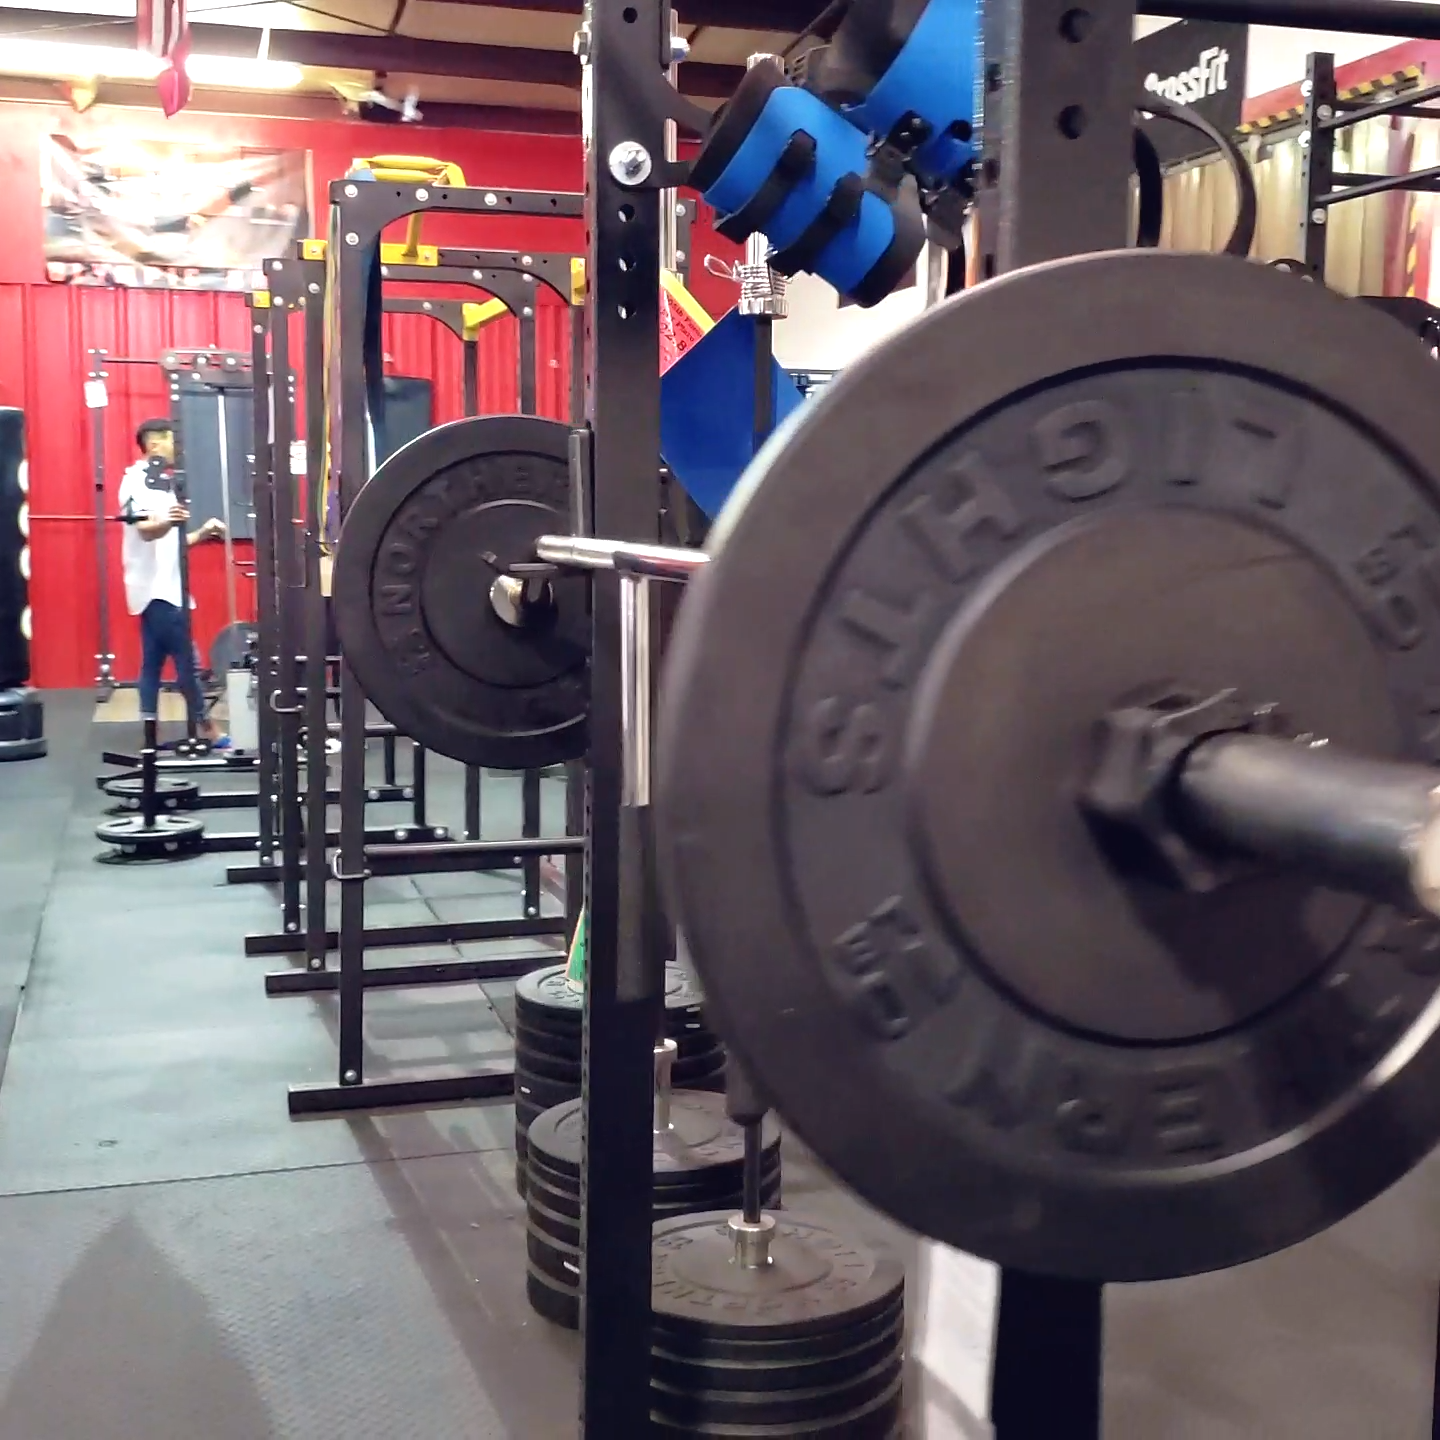 Home gym, garage gym, commercial gym, or just a set up in ...